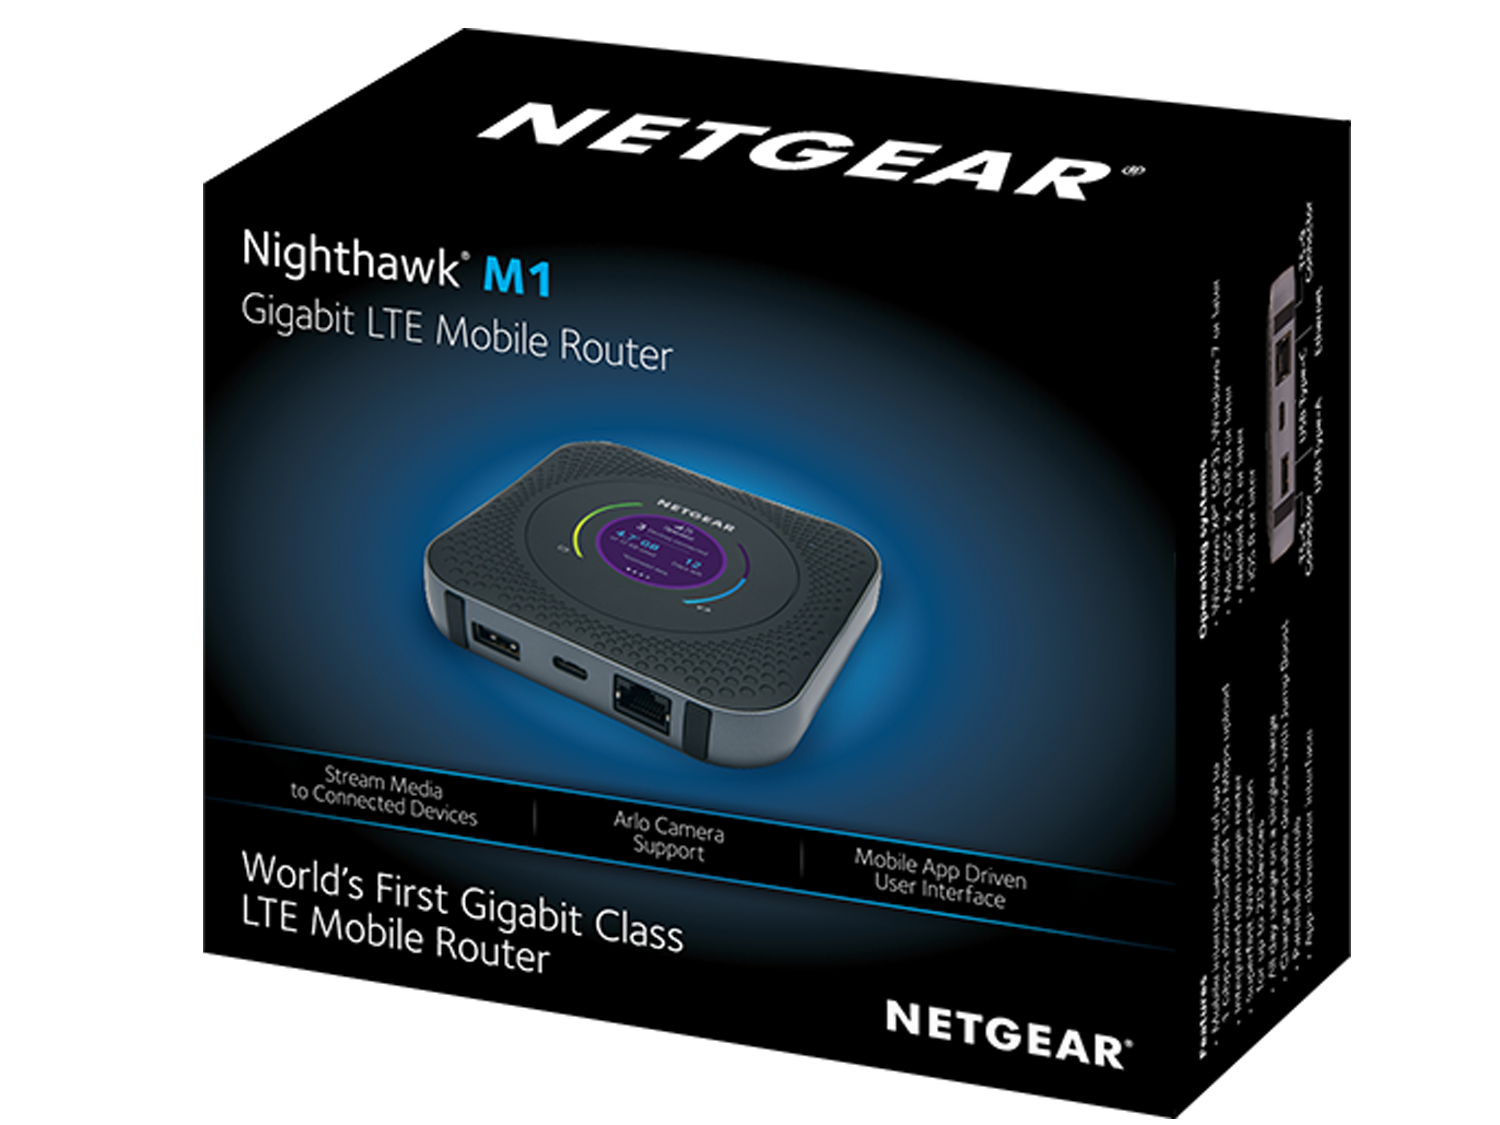 netgear mr1100 100eus nighthawk lte mobile hotspot router. Black Bedroom Furniture Sets. Home Design Ideas